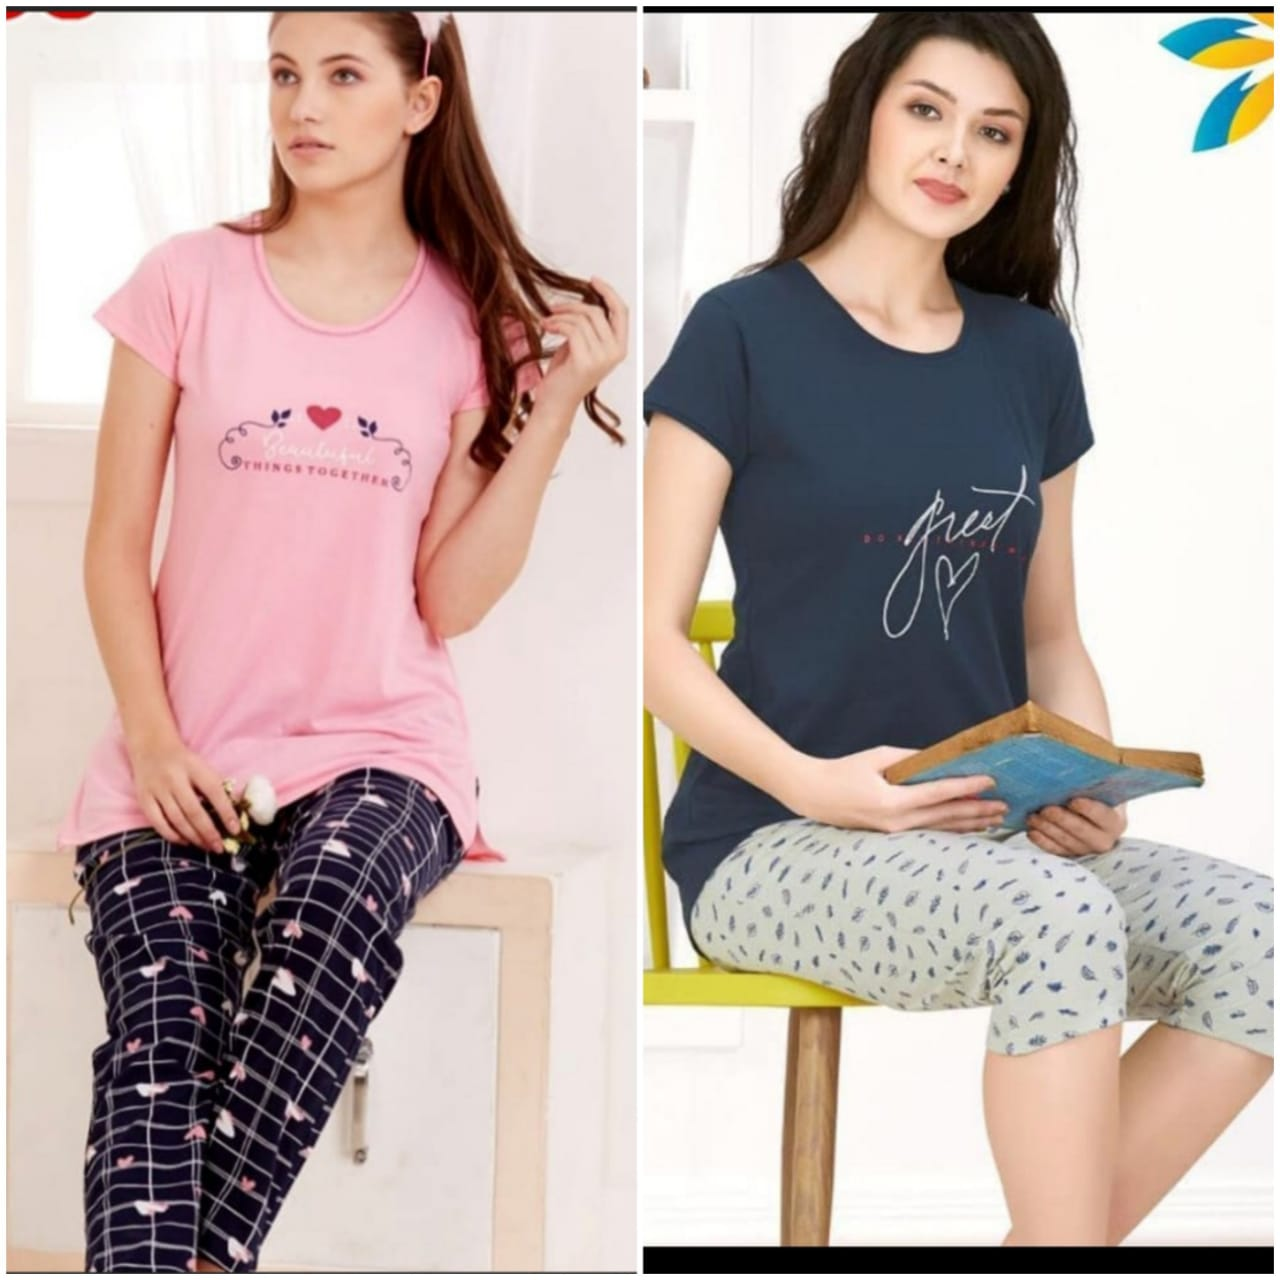 HSF Night Wear for 399/- - hsf39